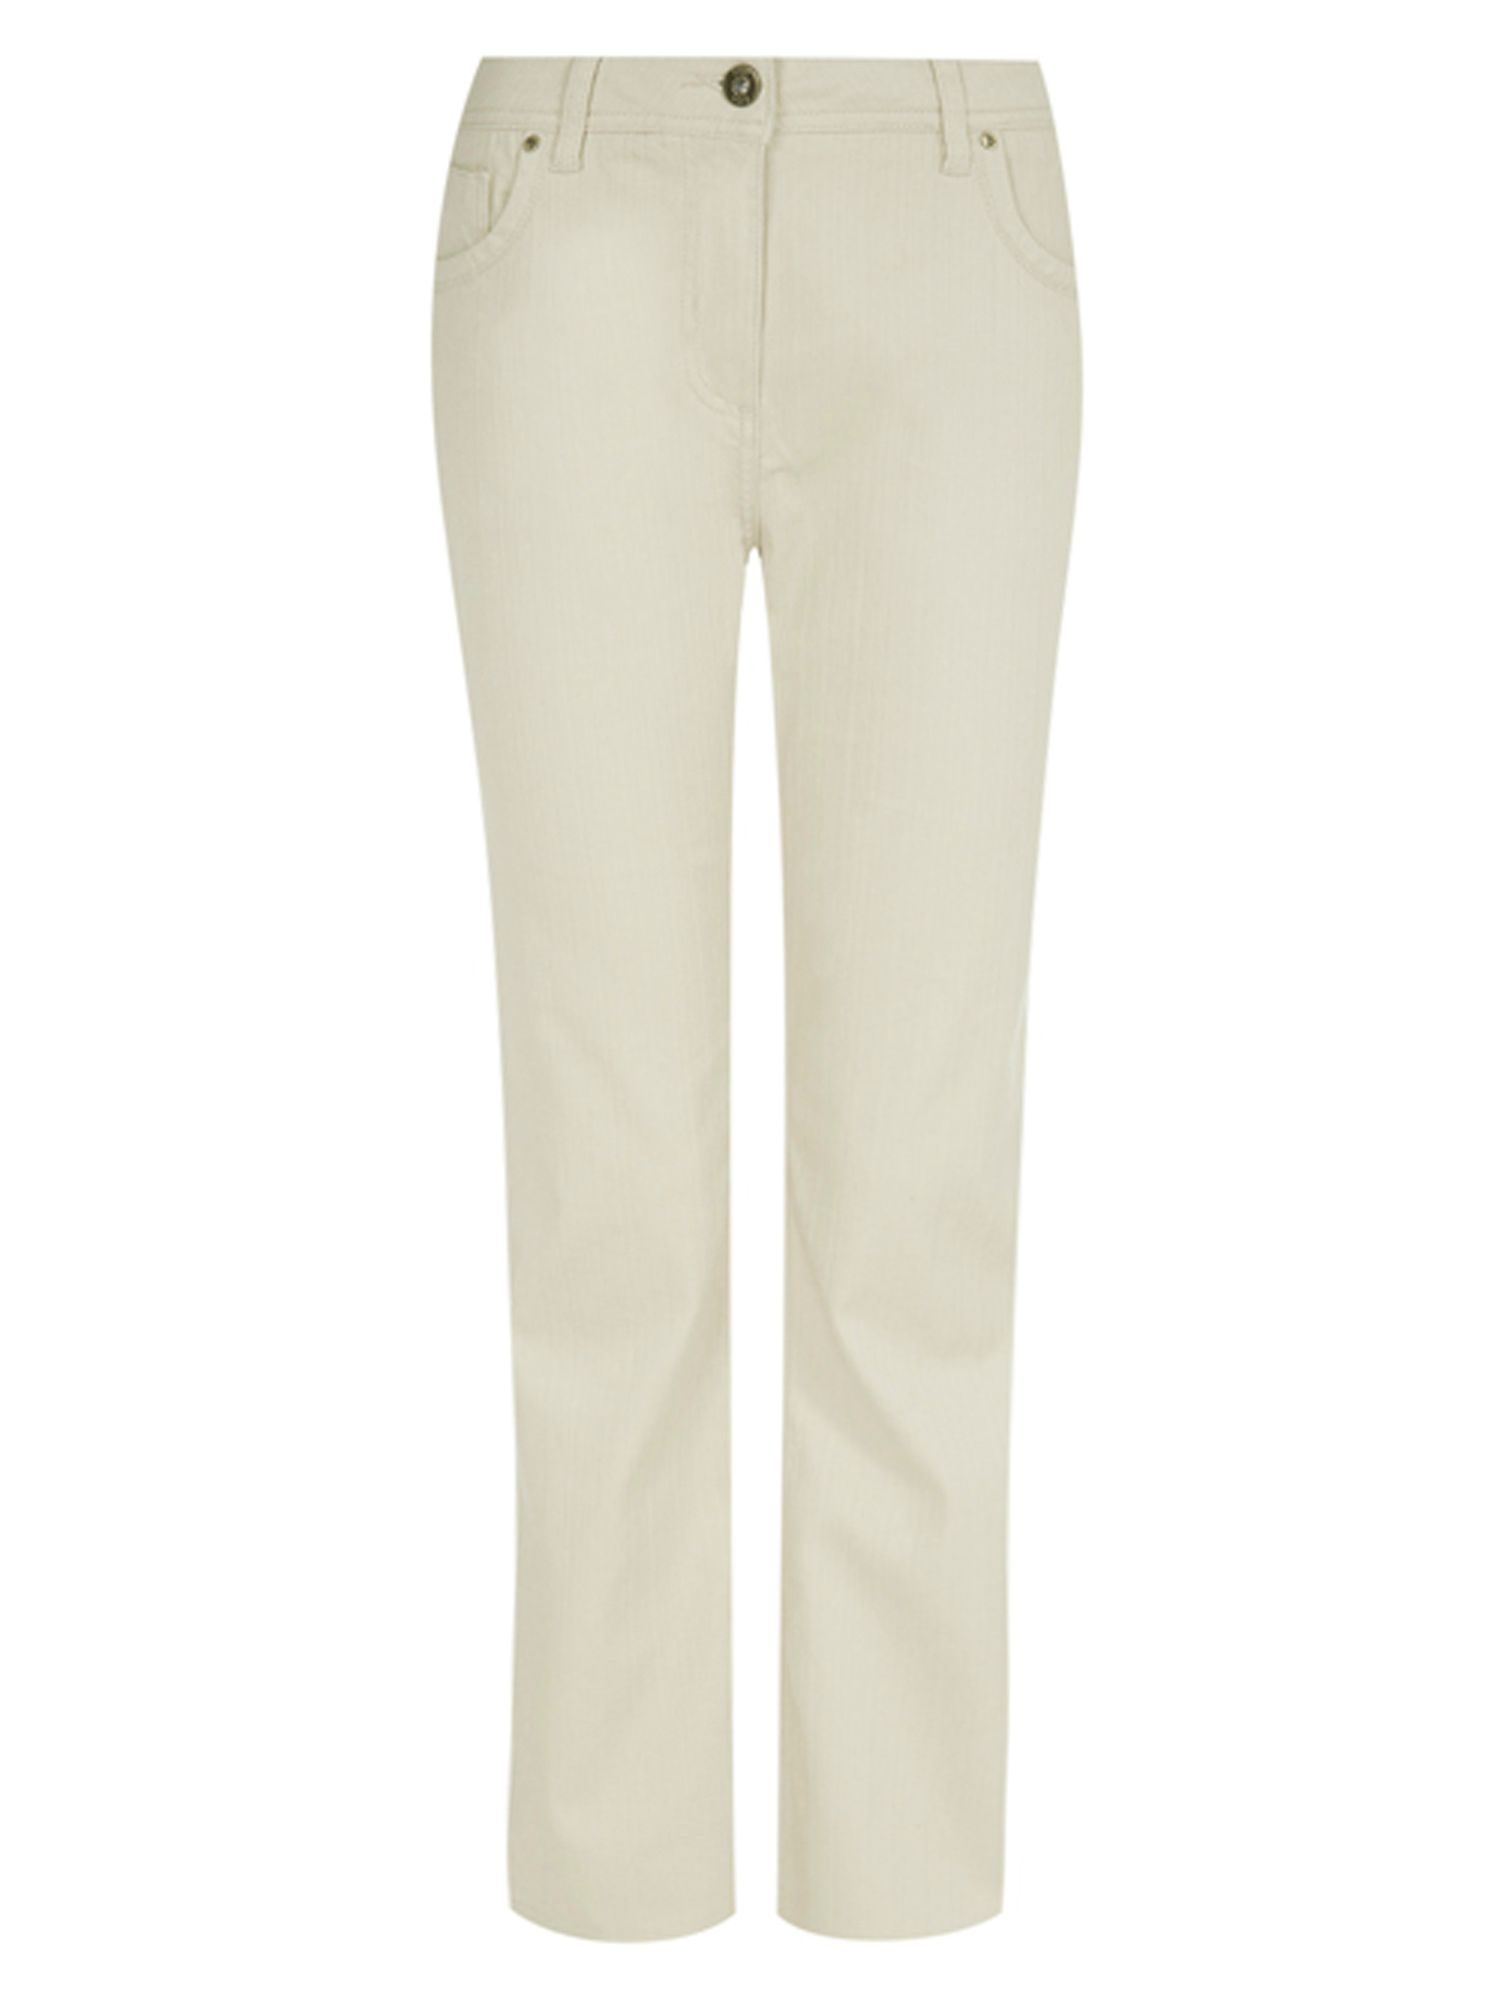 Textured Twill Trouser Regular